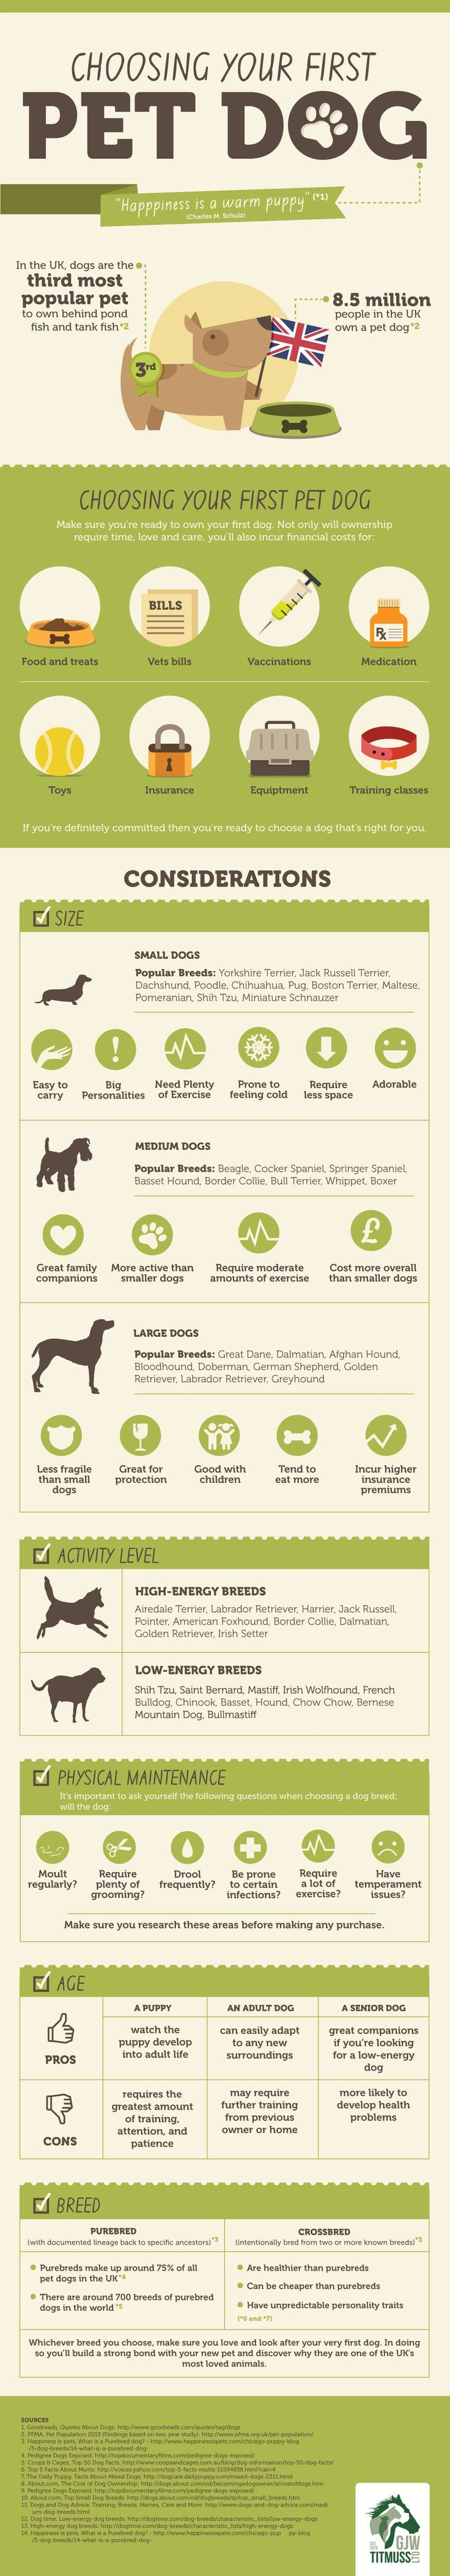 If you're looking to get your very first pet dog, take a look at this.  You may find some helpful information!